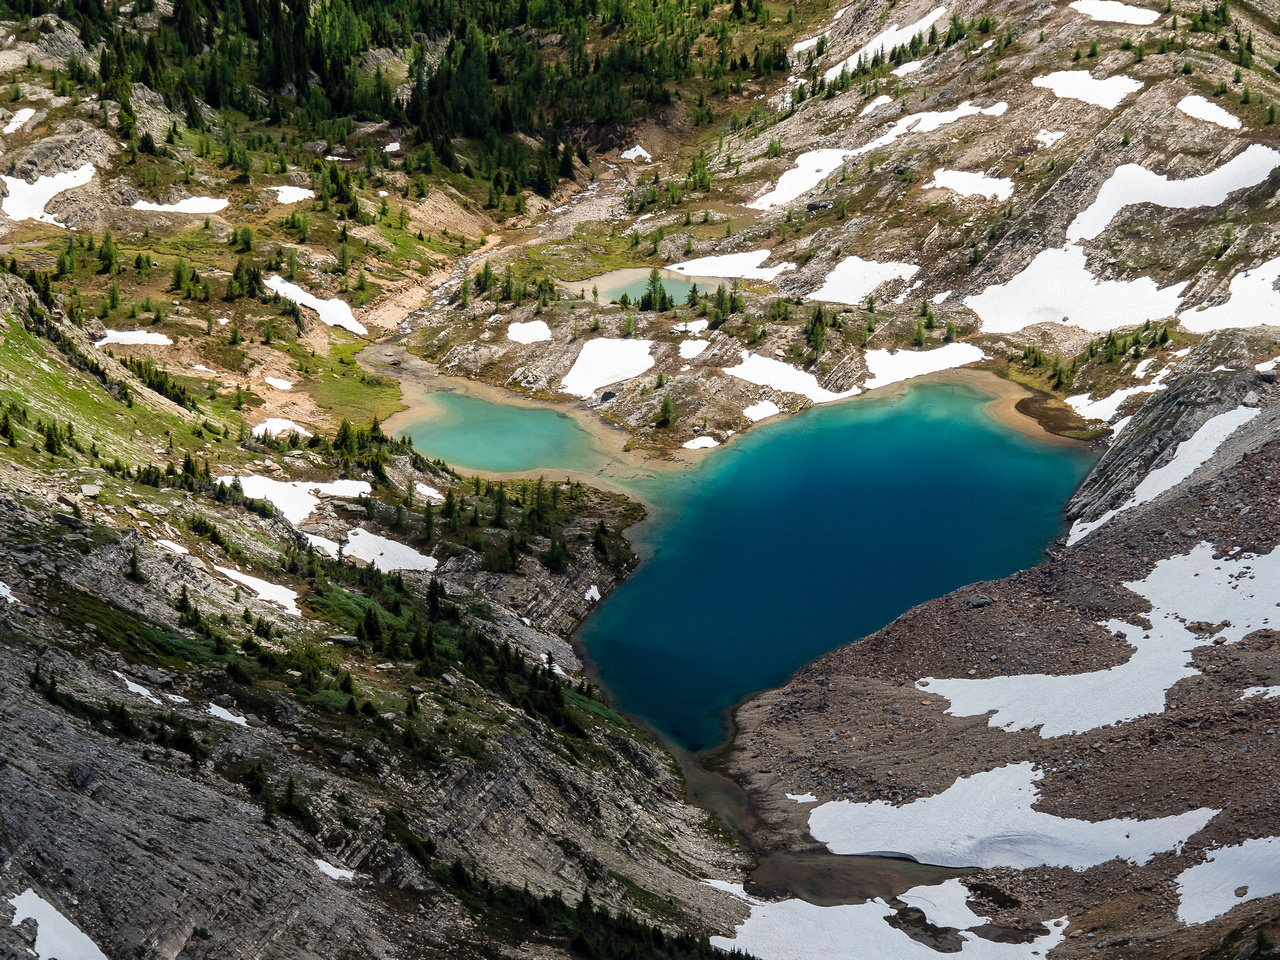 The small unnamed tarns just south of us were beautiful shades of green / blue. Game Lake is just downstream here and this is the Nestor Creek drainage.